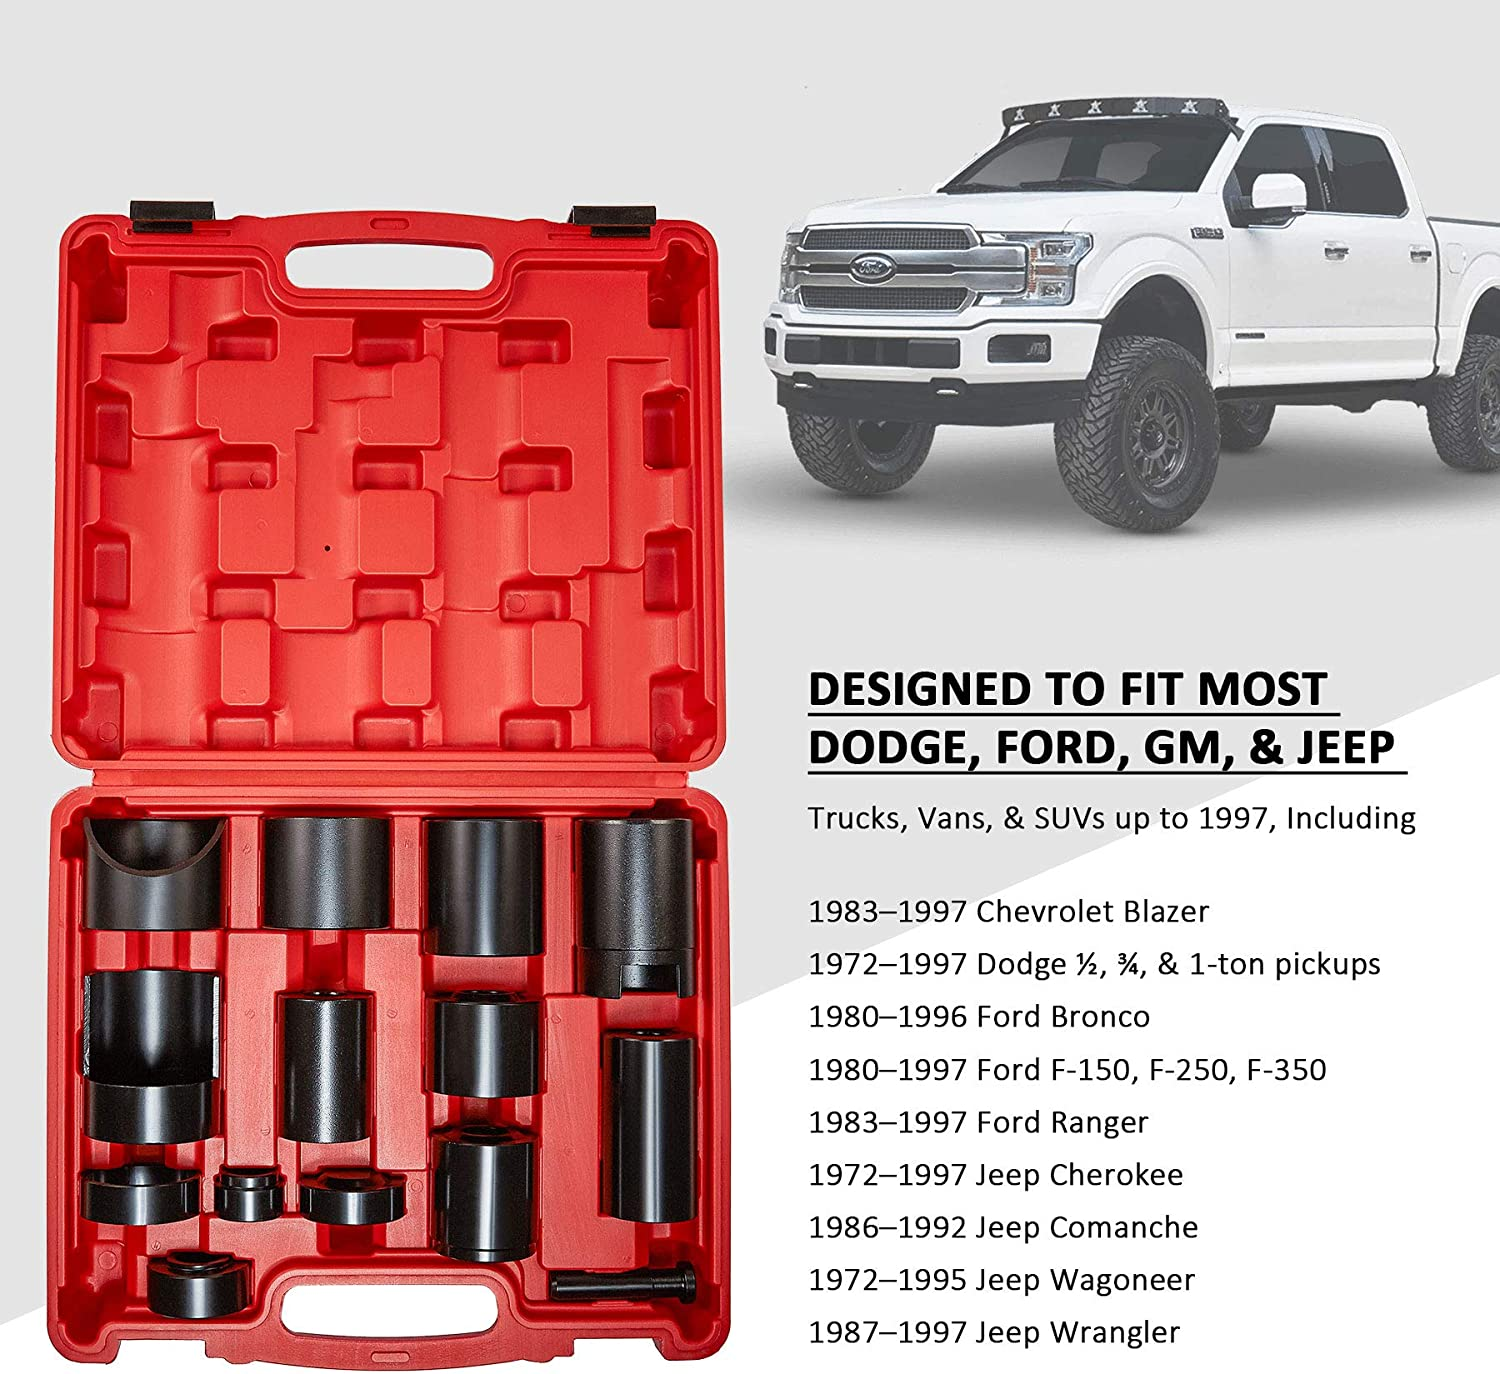 SUVs Red Case Orion Motor Tech 14 Pc Master Ball Joint Adapter Set for Most 2WD and 4WD Trucks Vans